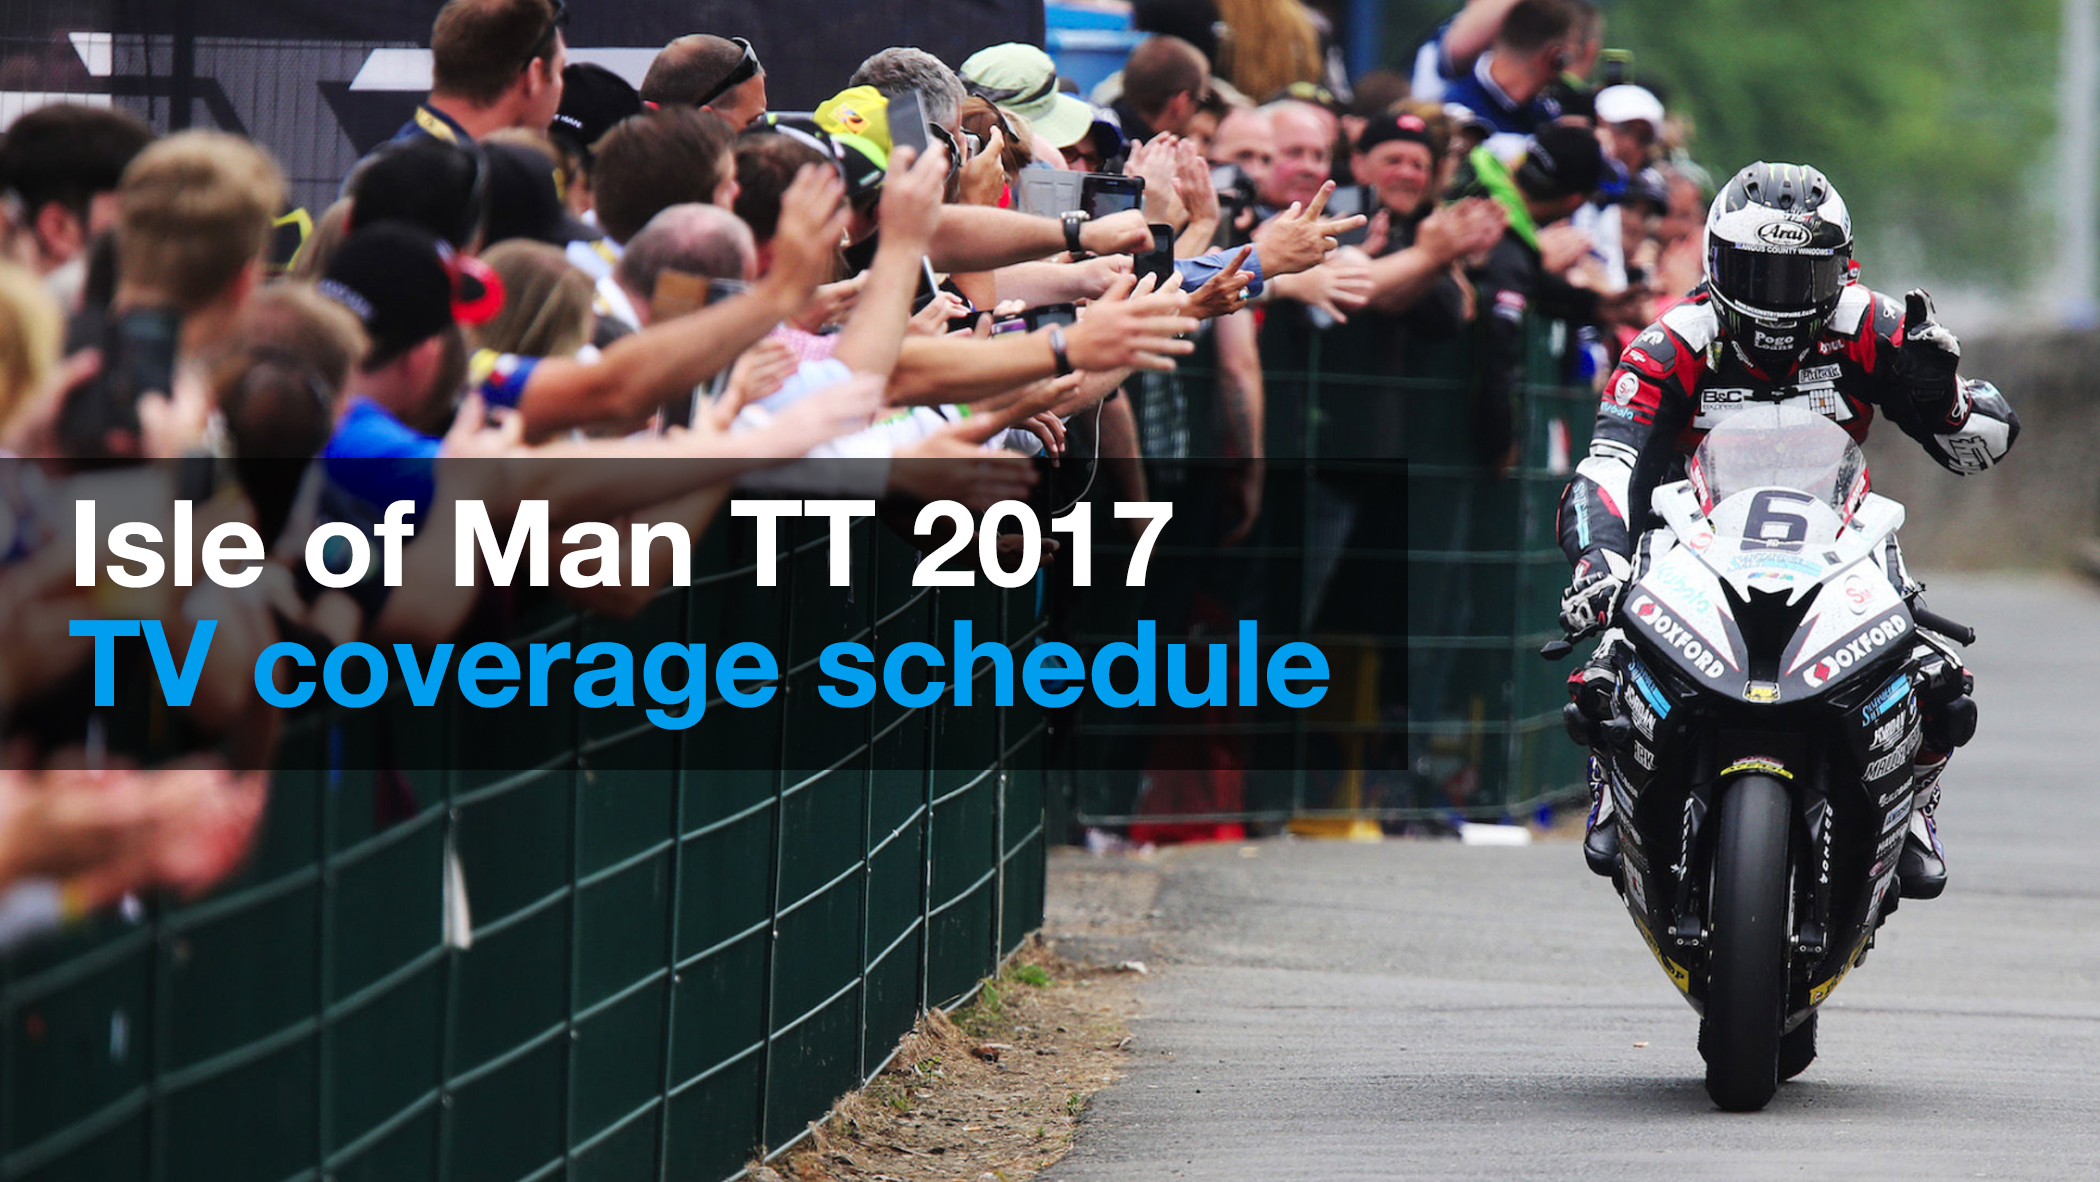 isle-of-man-tt-2017-tv-coverage